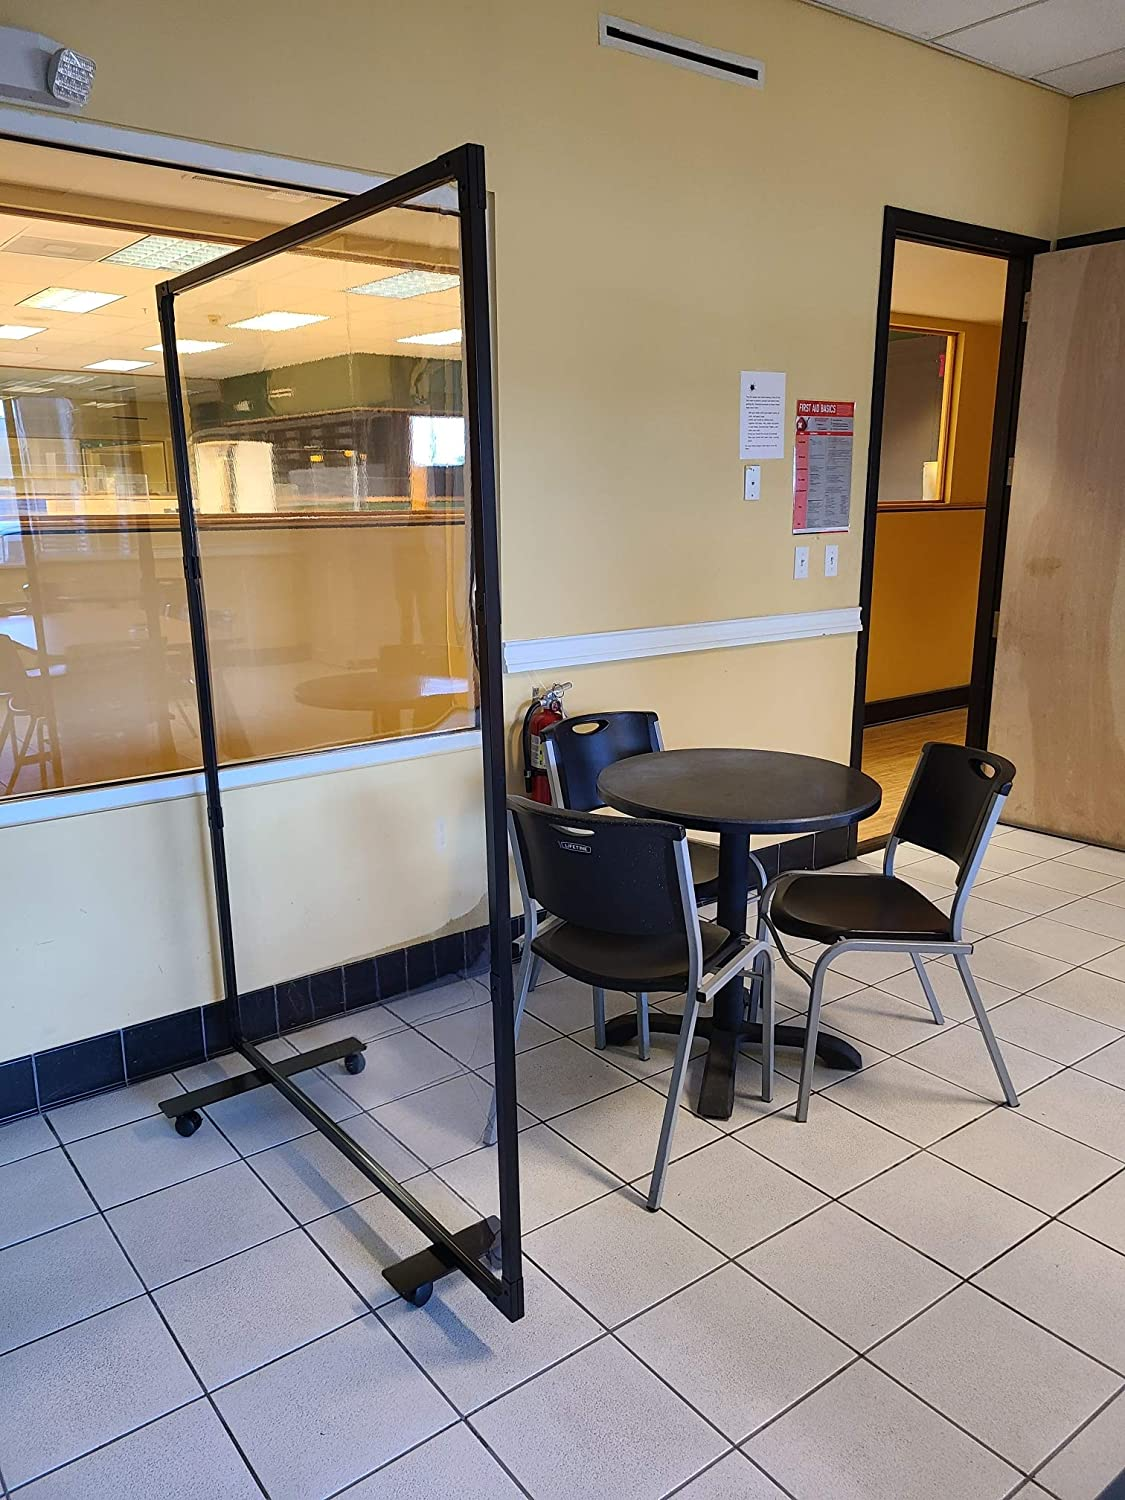 """Portable Partition Dividers 75""""H x 50.5""""W - Clear Screens Sanitation Walls/Great for Offices, Salons, Clinics, Nail Salons, and Restaurants (Black)"""